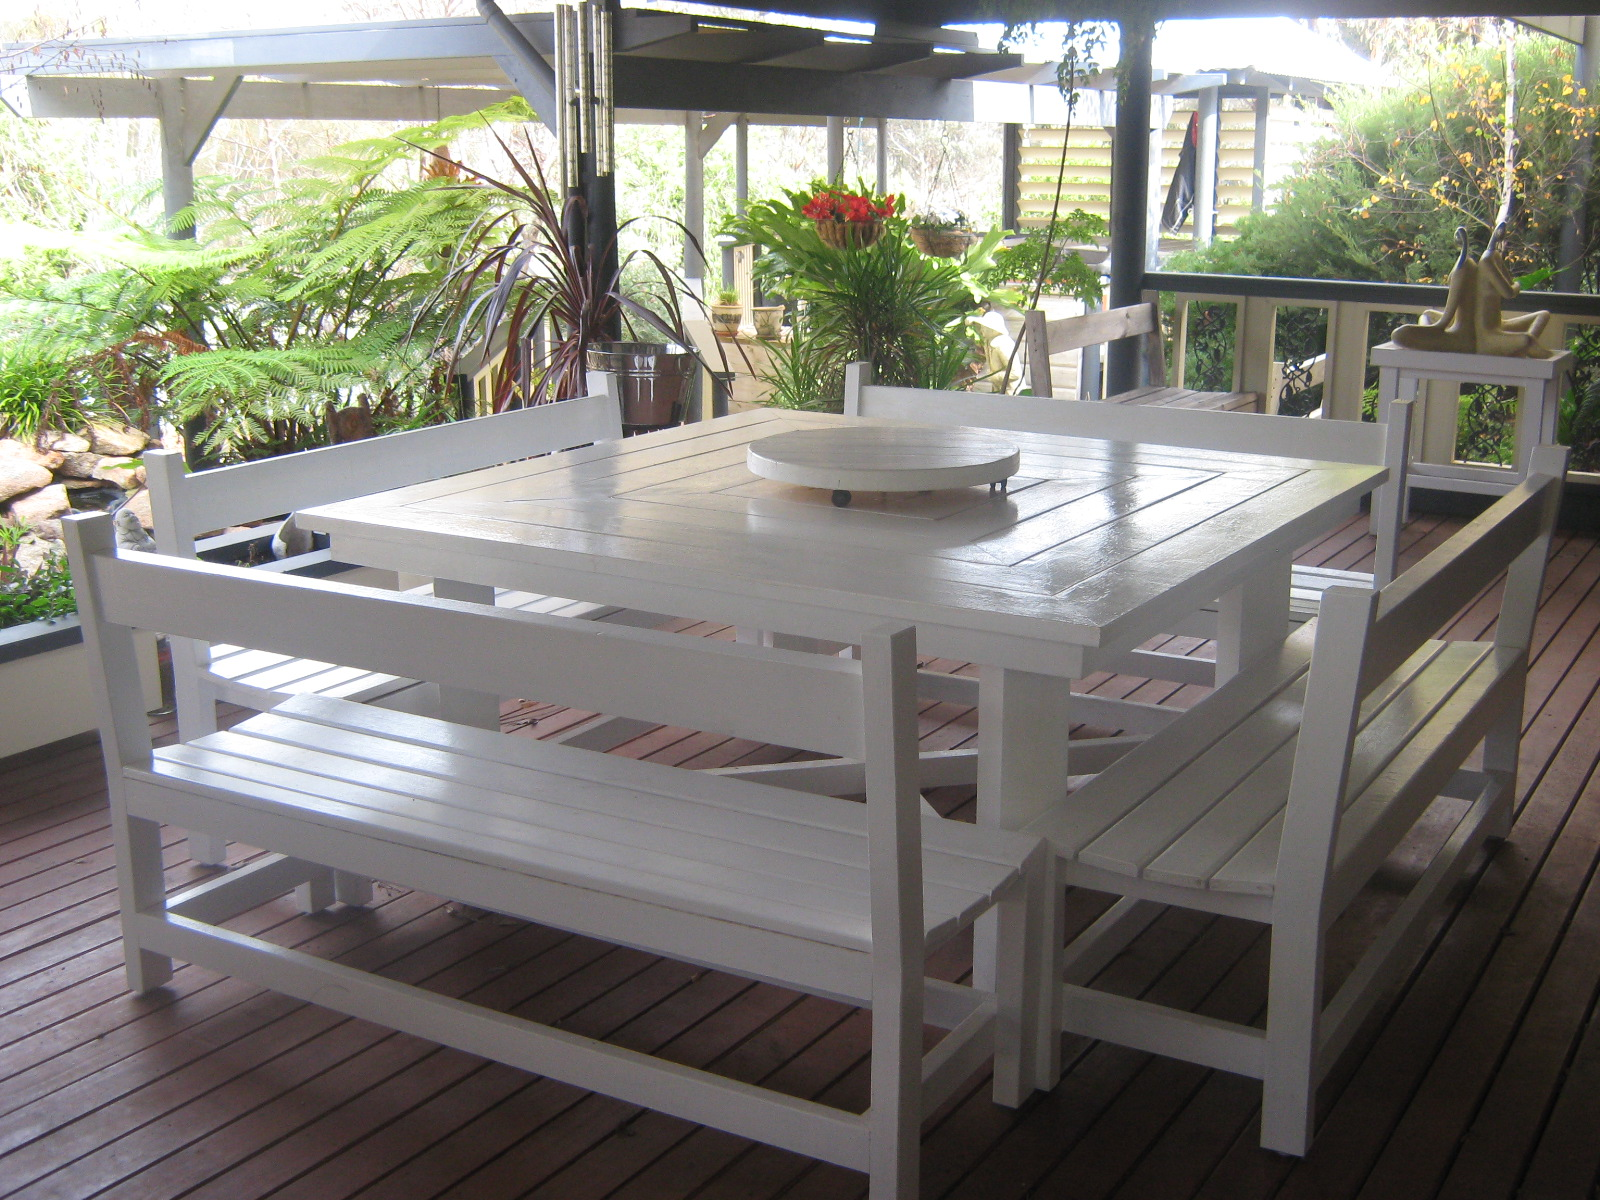 Picture of: Outdoor Table With Bench Seats Kamelot Constructions